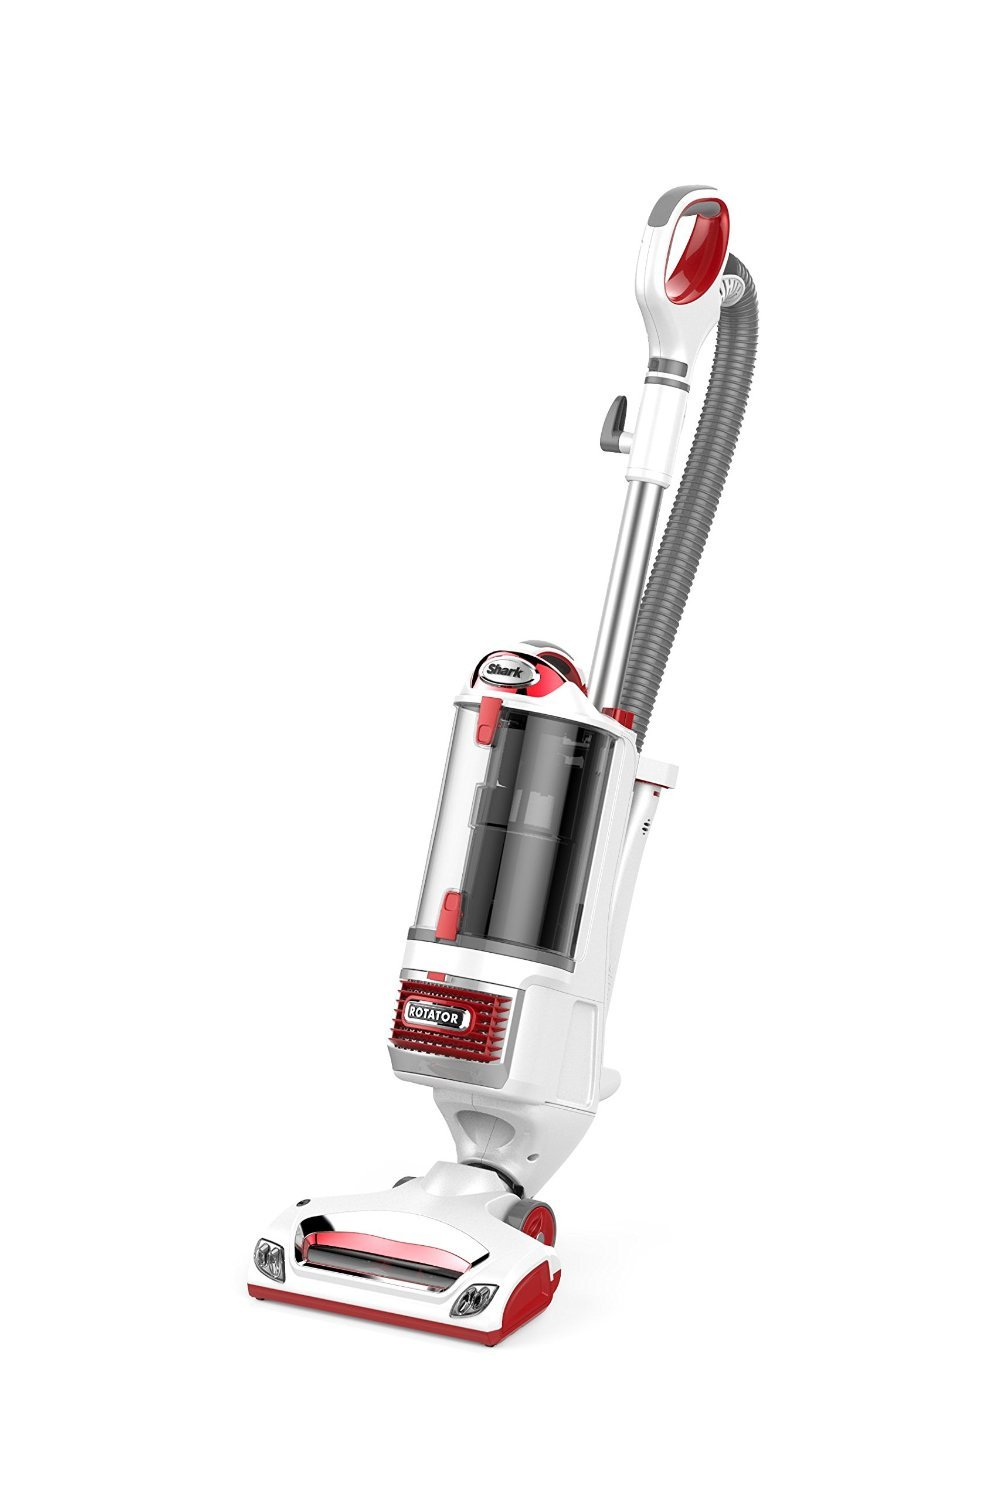 Shark Rotator Nv501 Professional Lift Away Vacuum 2 In 1